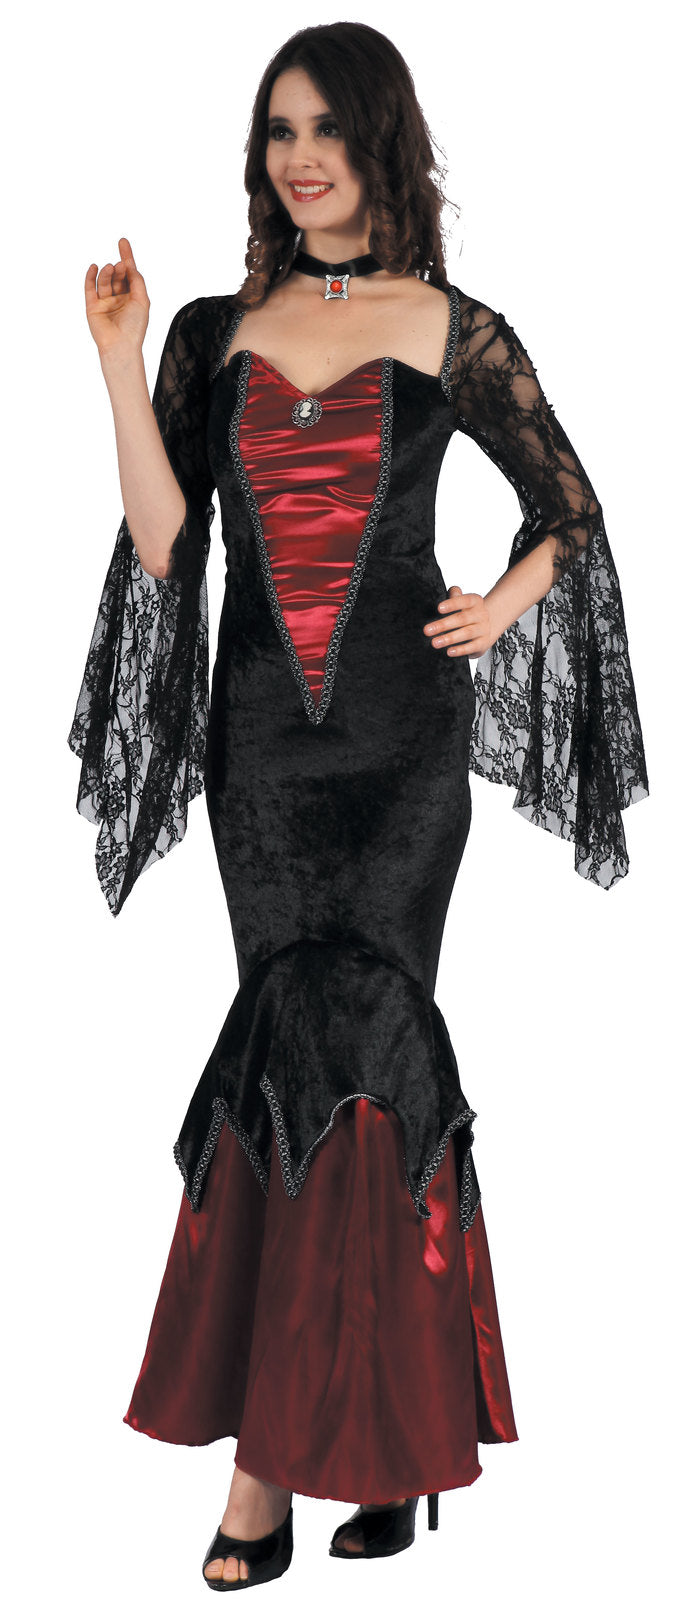 VAMPY VAMPIRESS HALLOWEEN COSTUME, ADULT - SIZE M